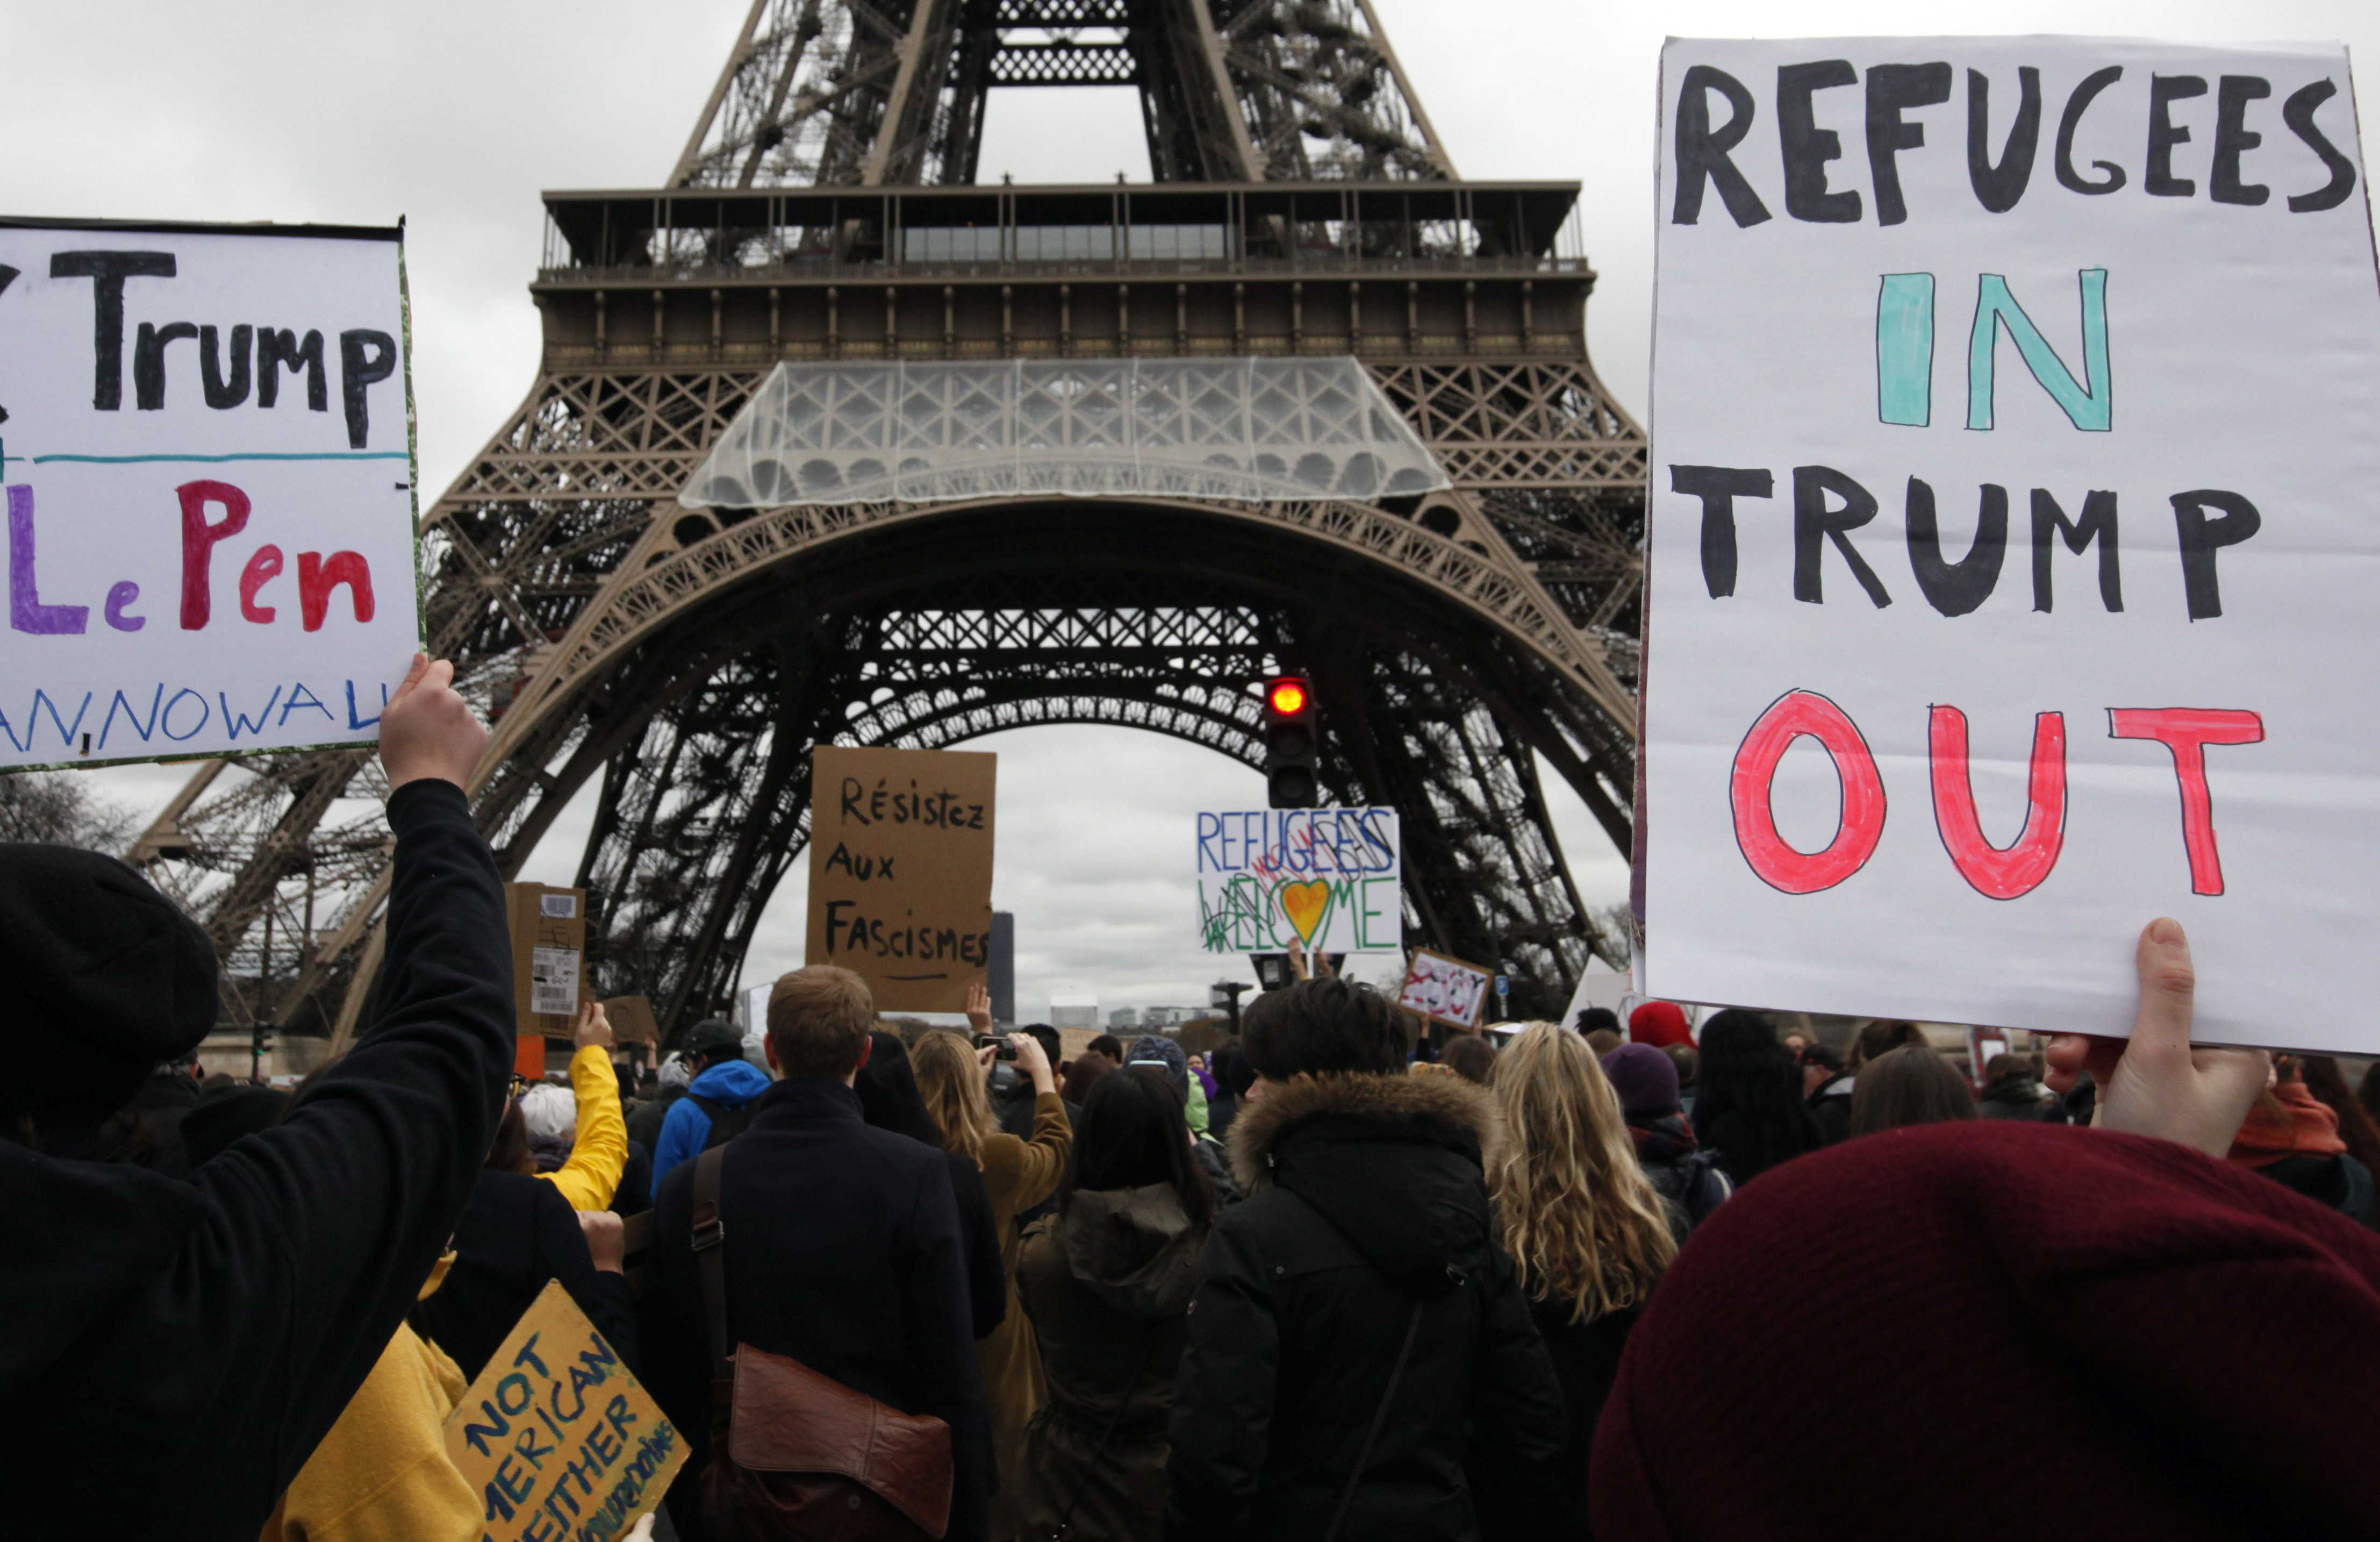 Protesters rally near the Eiffel Tower to demonstrate against US President Donald Trump's immigration order in Paris, France, February 4, 2017. REUTERS/Mal Langsdon - RTX2ZM3D